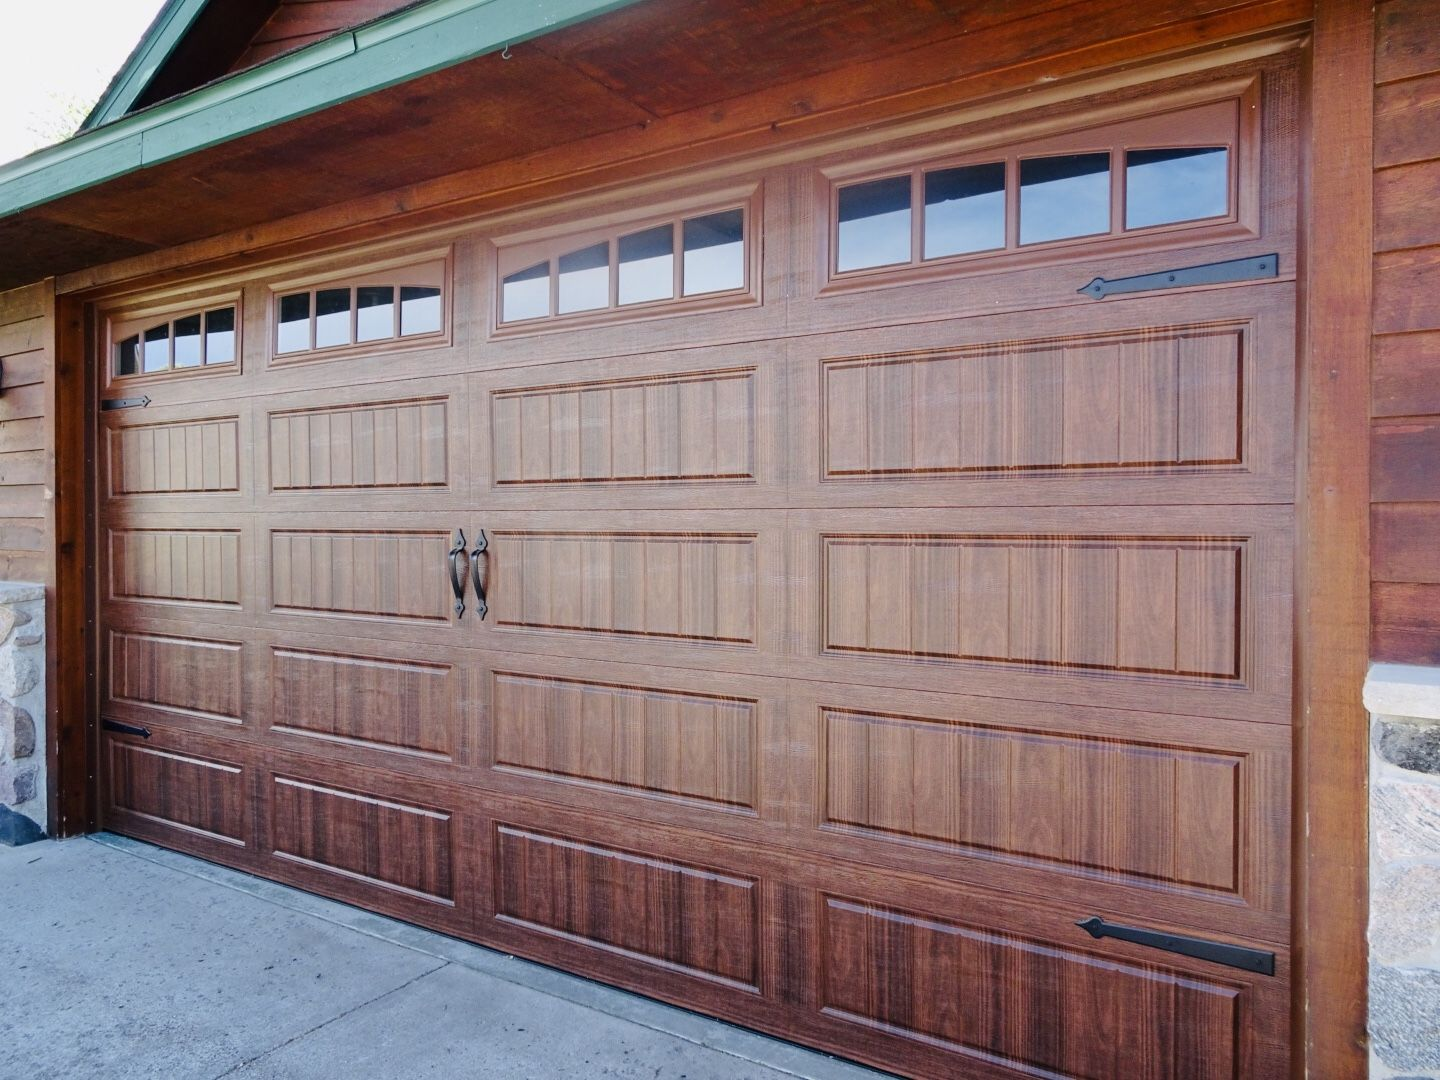 Amarr Hillcrest 3000 Garage Door In Walnut With Long Panel Bead Board And Arched Thames Windows Garage Doors Garage Door Design Aluminium Garage Doors